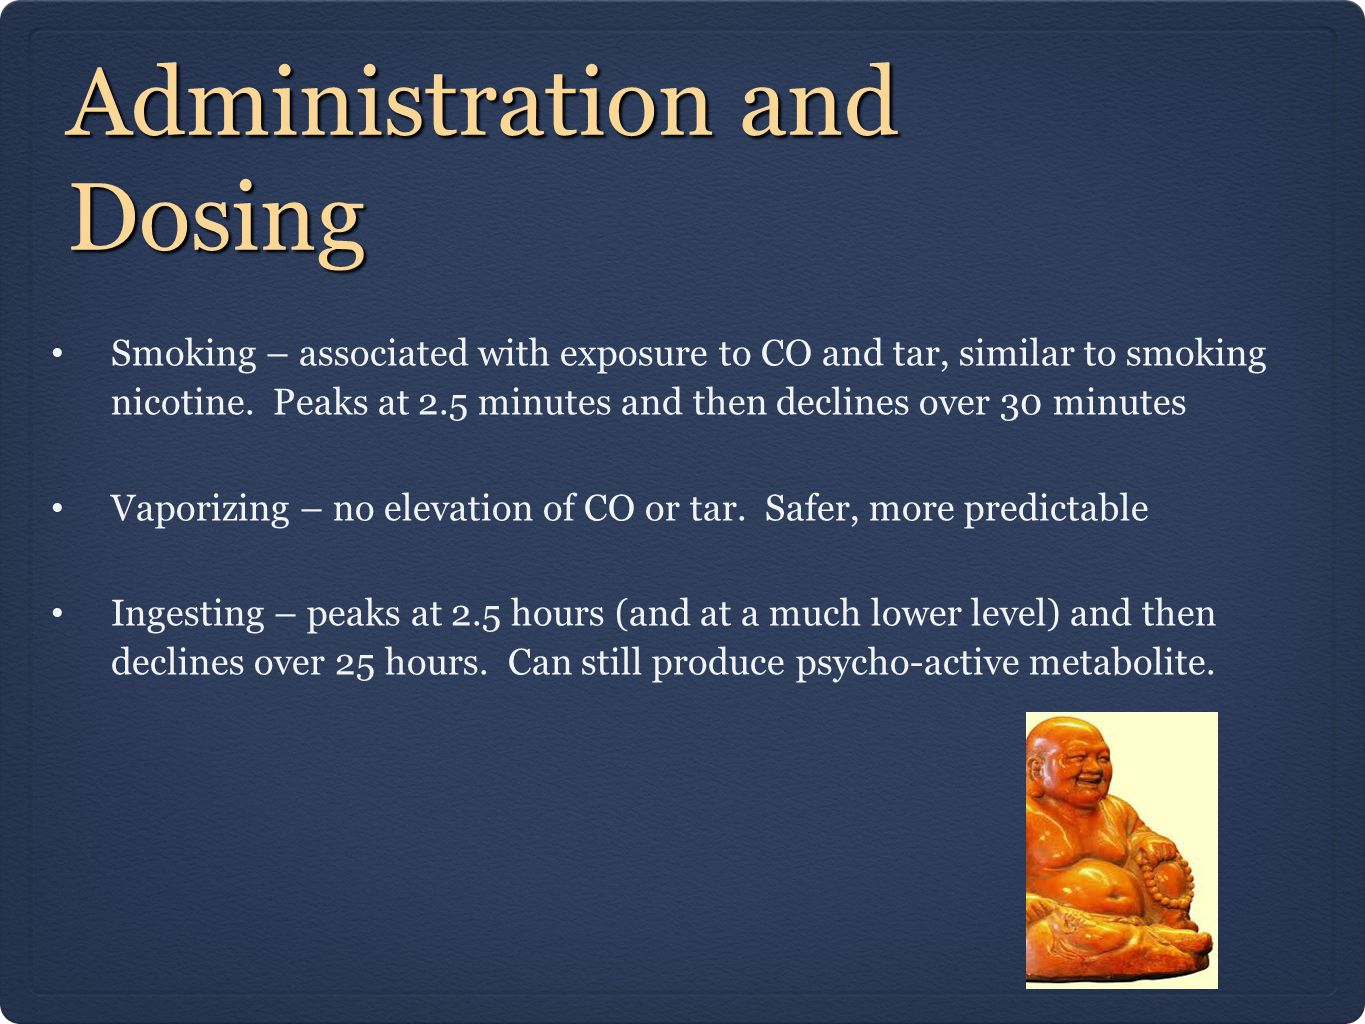 Administration and Dosing